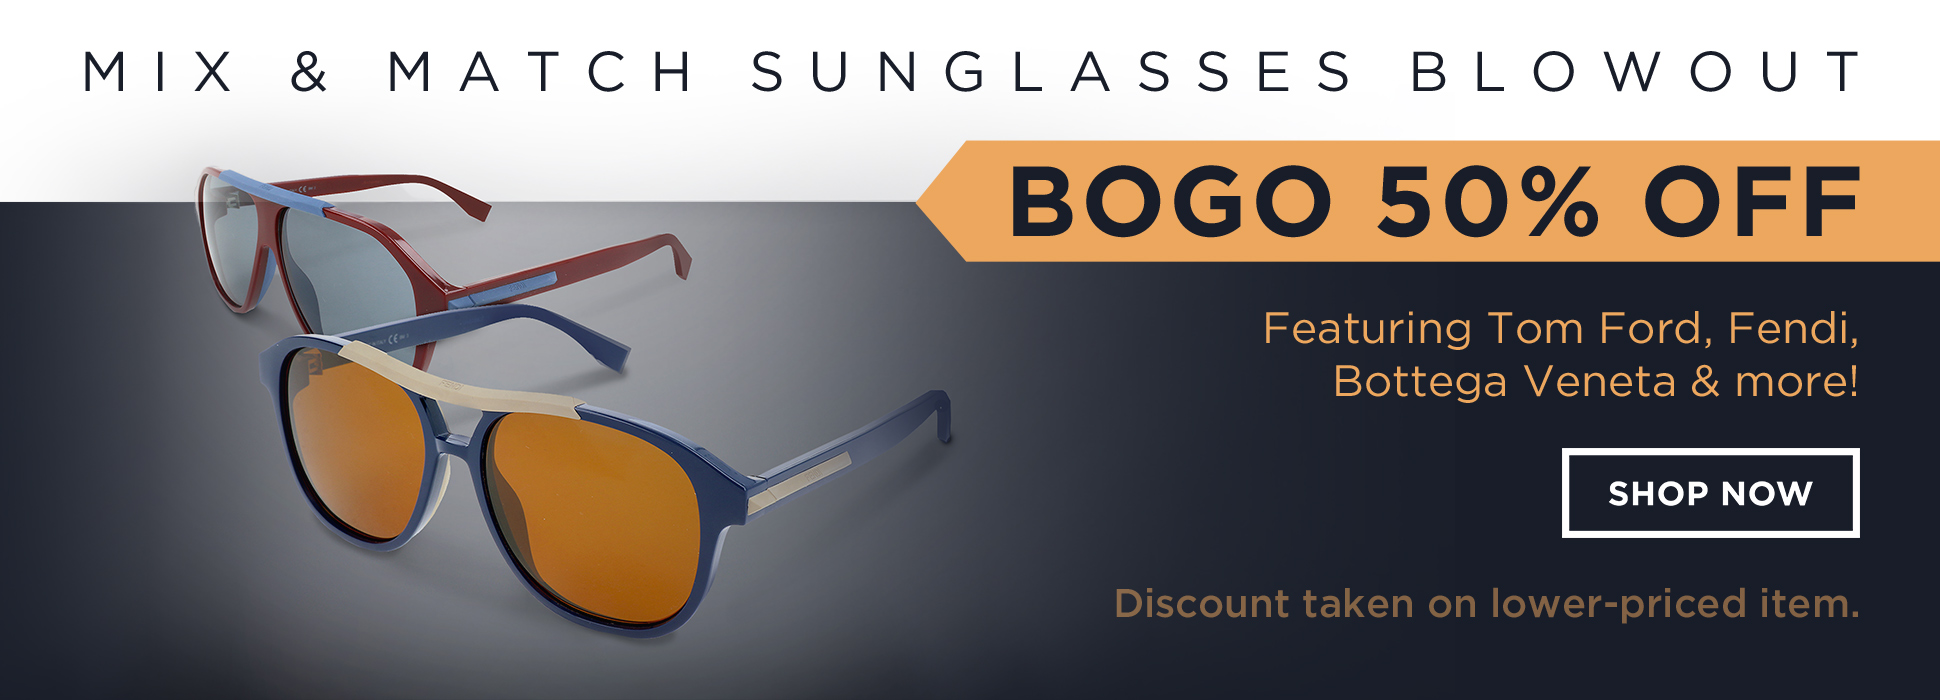 Sunglasses Blowout BOGO 50% (Banners)